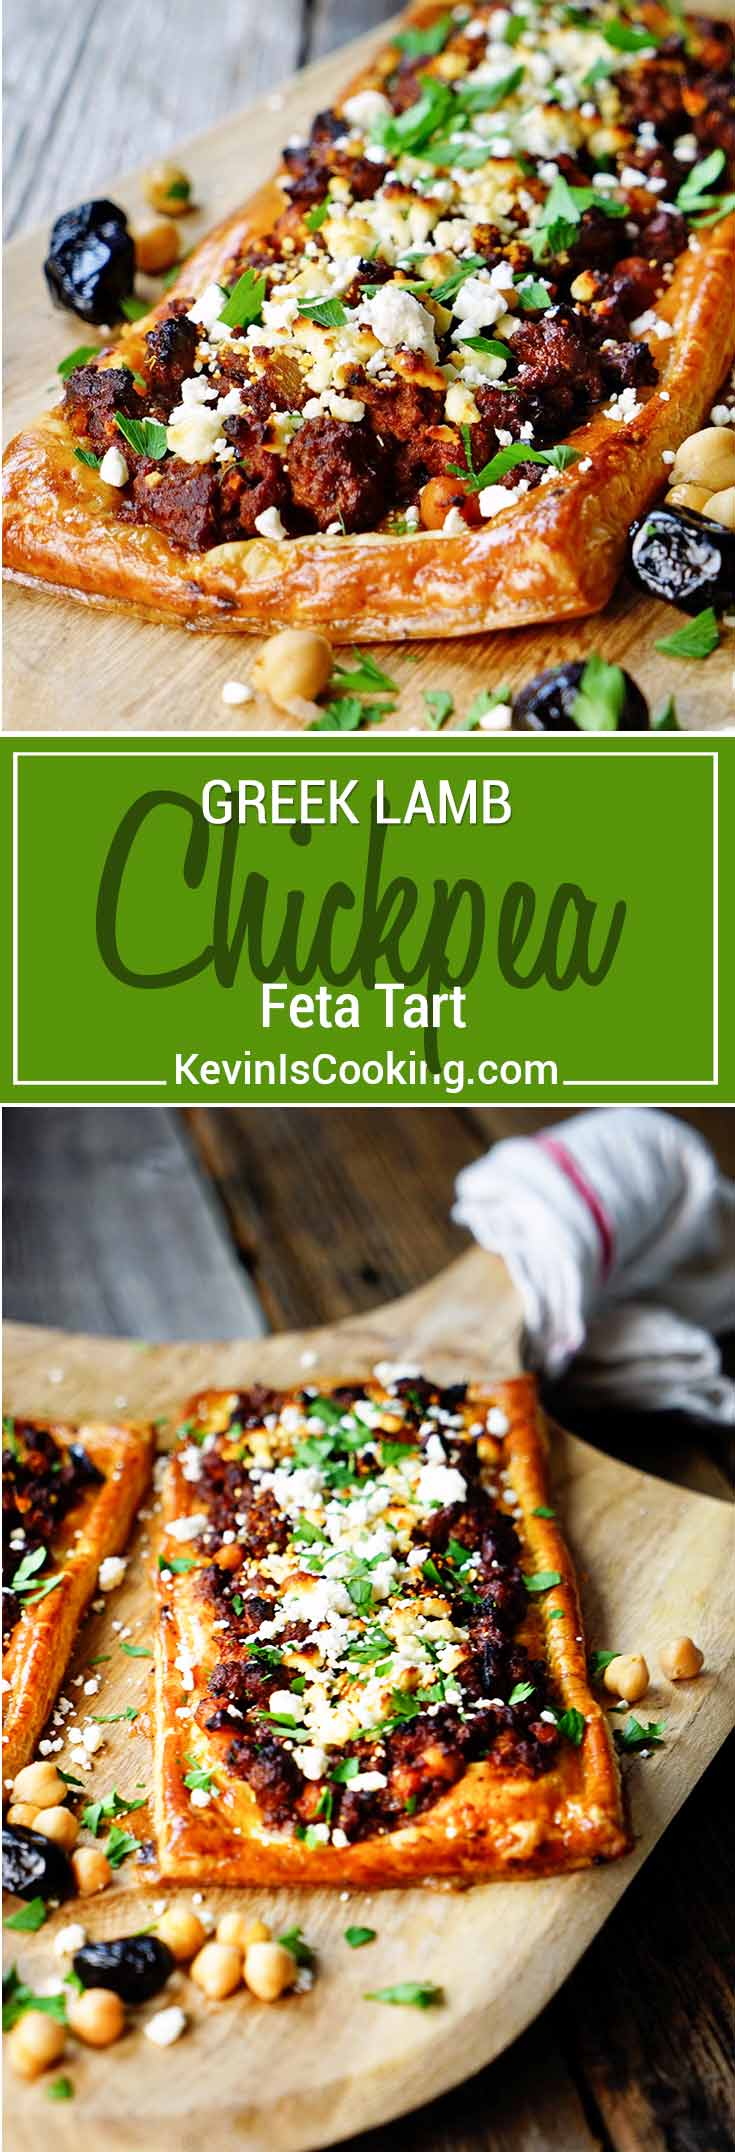 This Greek Lamb, Chickpea and Feta Tart is made with warm spices, ground lamb, olives, feta cheese and puff pastry. Delivers big on flavor!